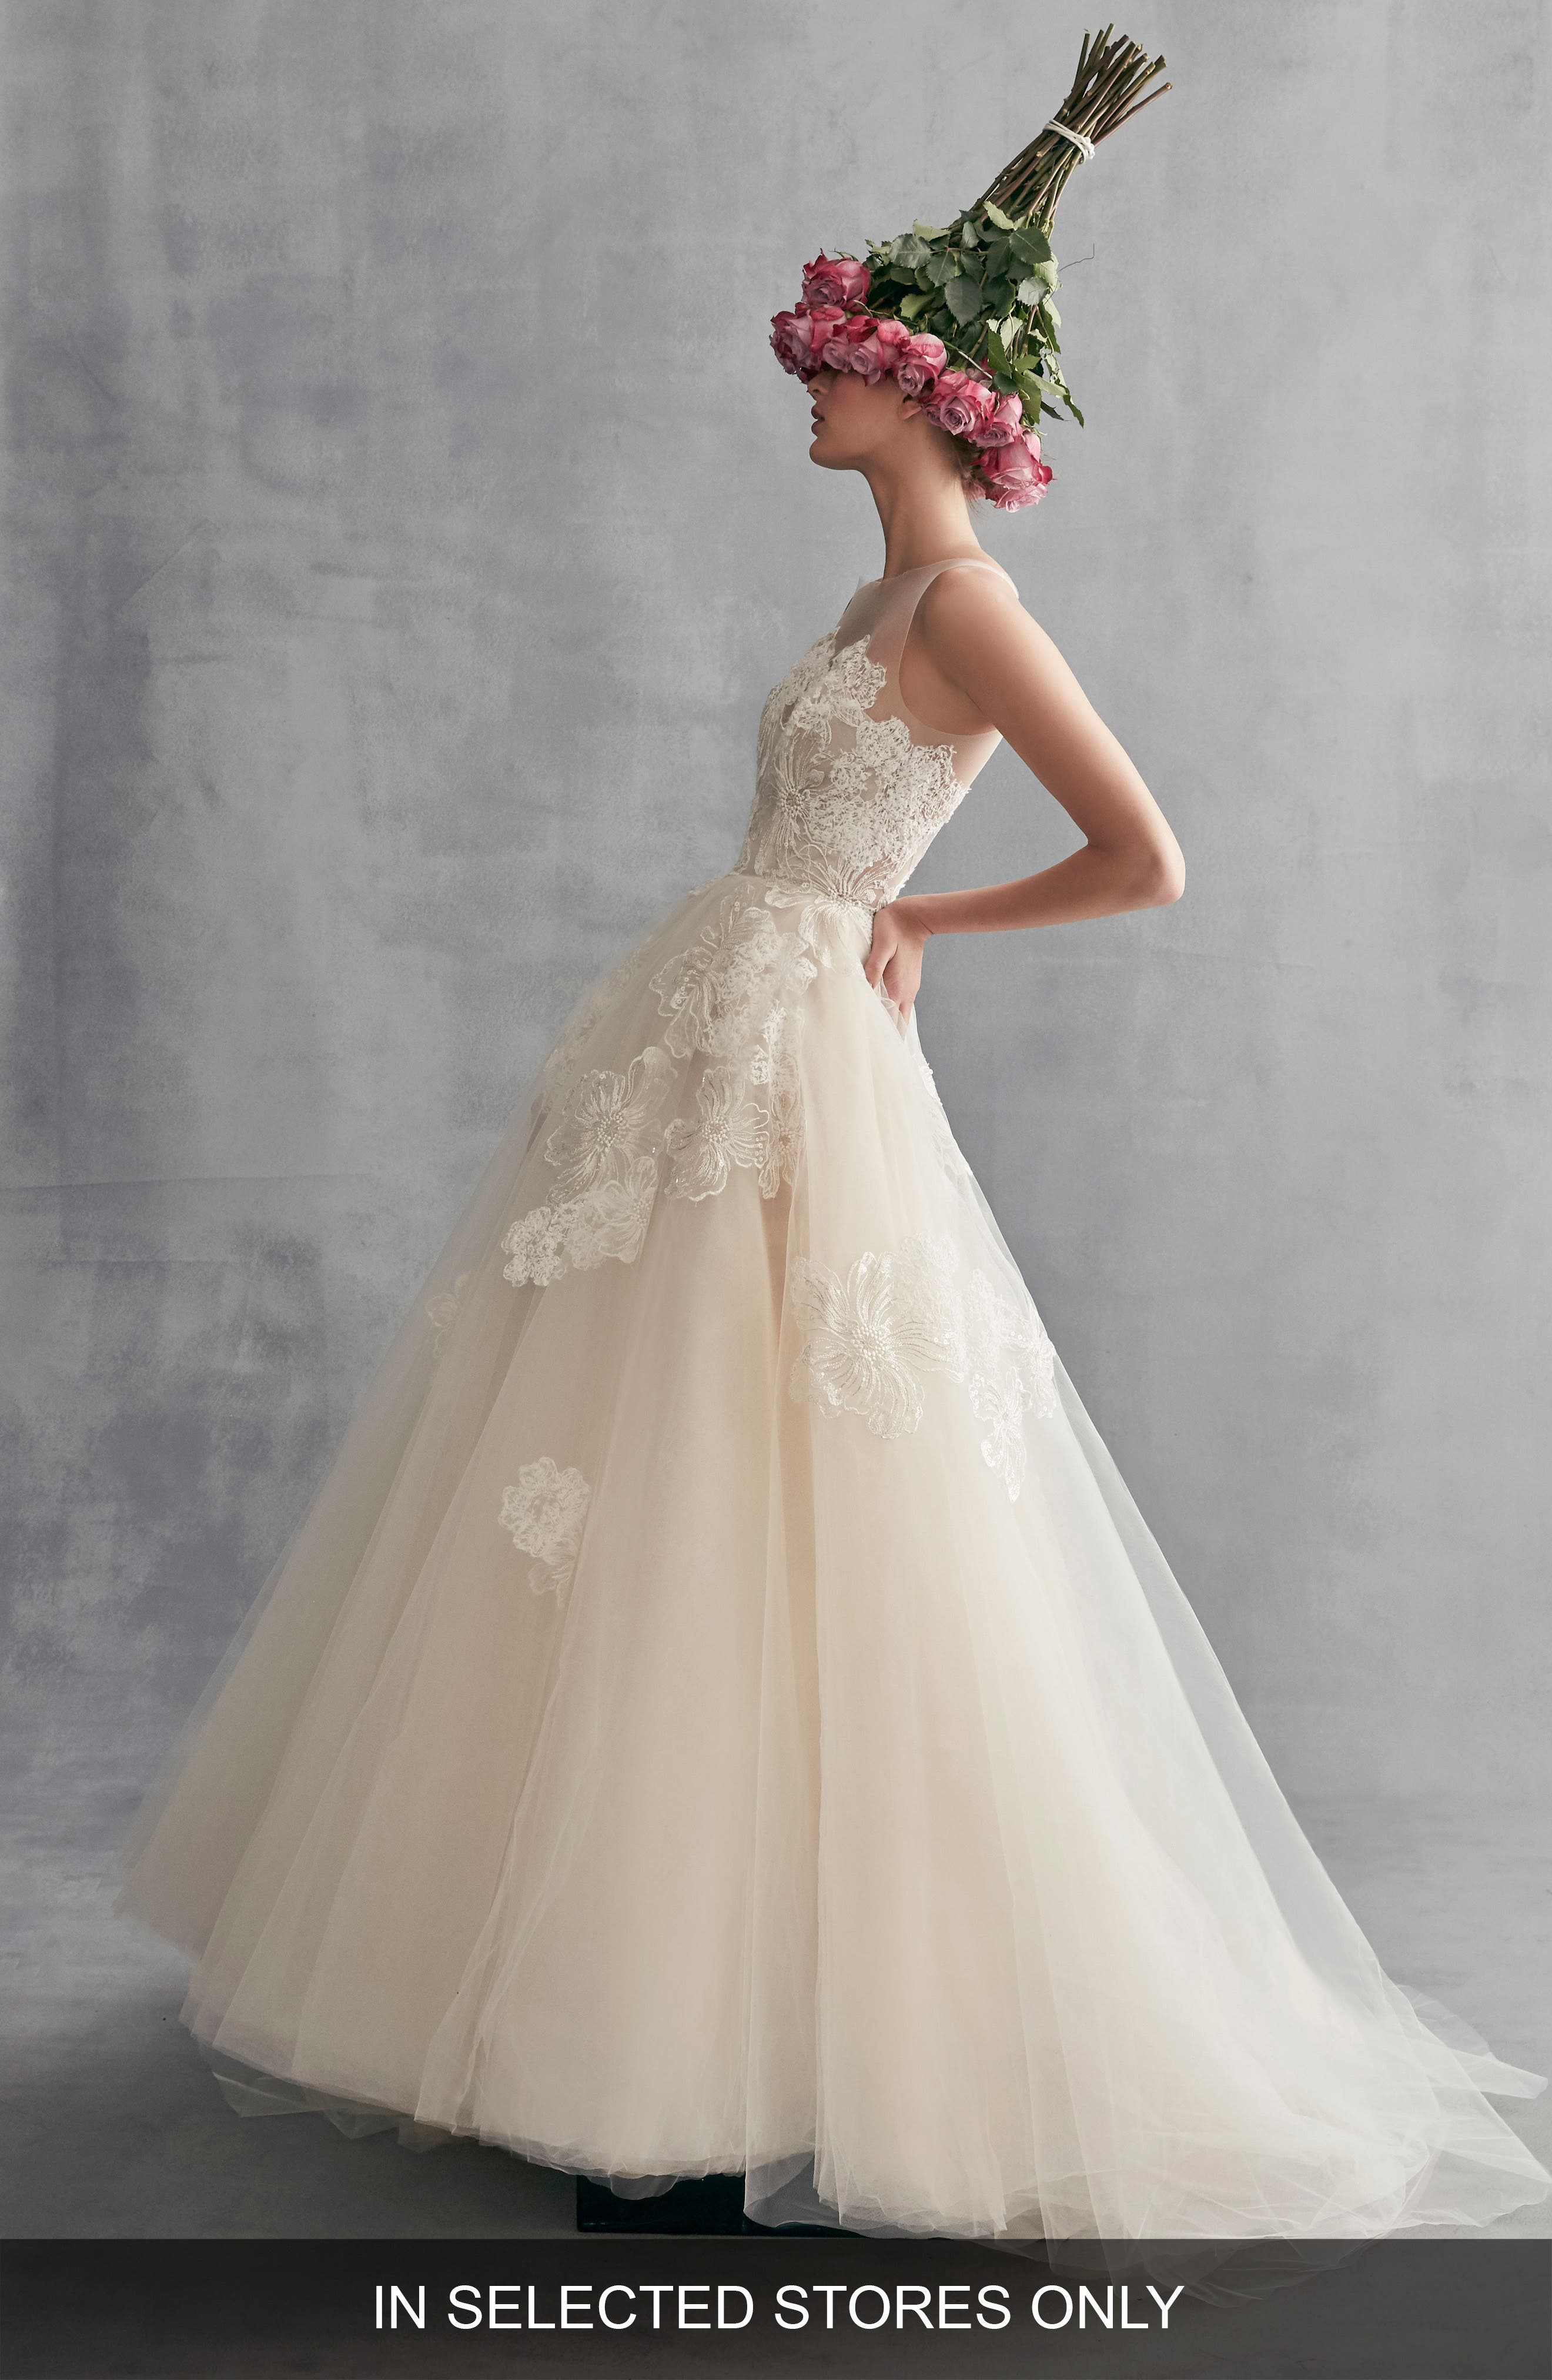 Main Image - Ines by Ines Di Santo Peony Embroidered Tulle Ballgown